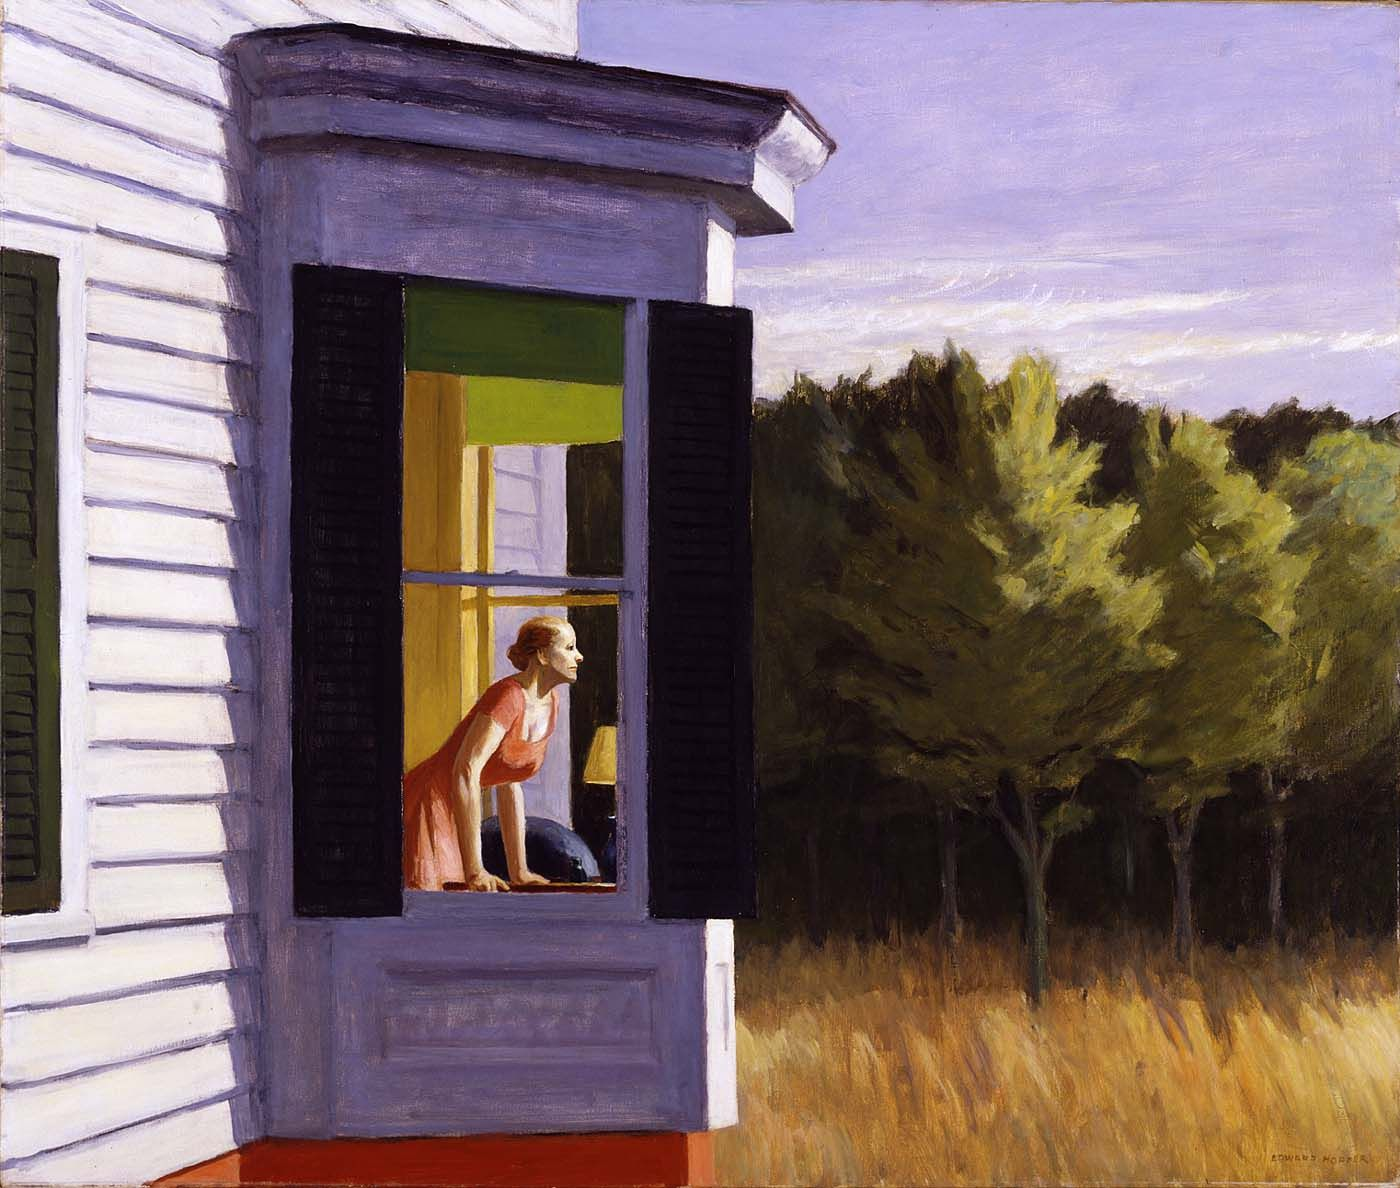 Edward hopper art hopper fen tre peinture window for Art et fenetre lyon